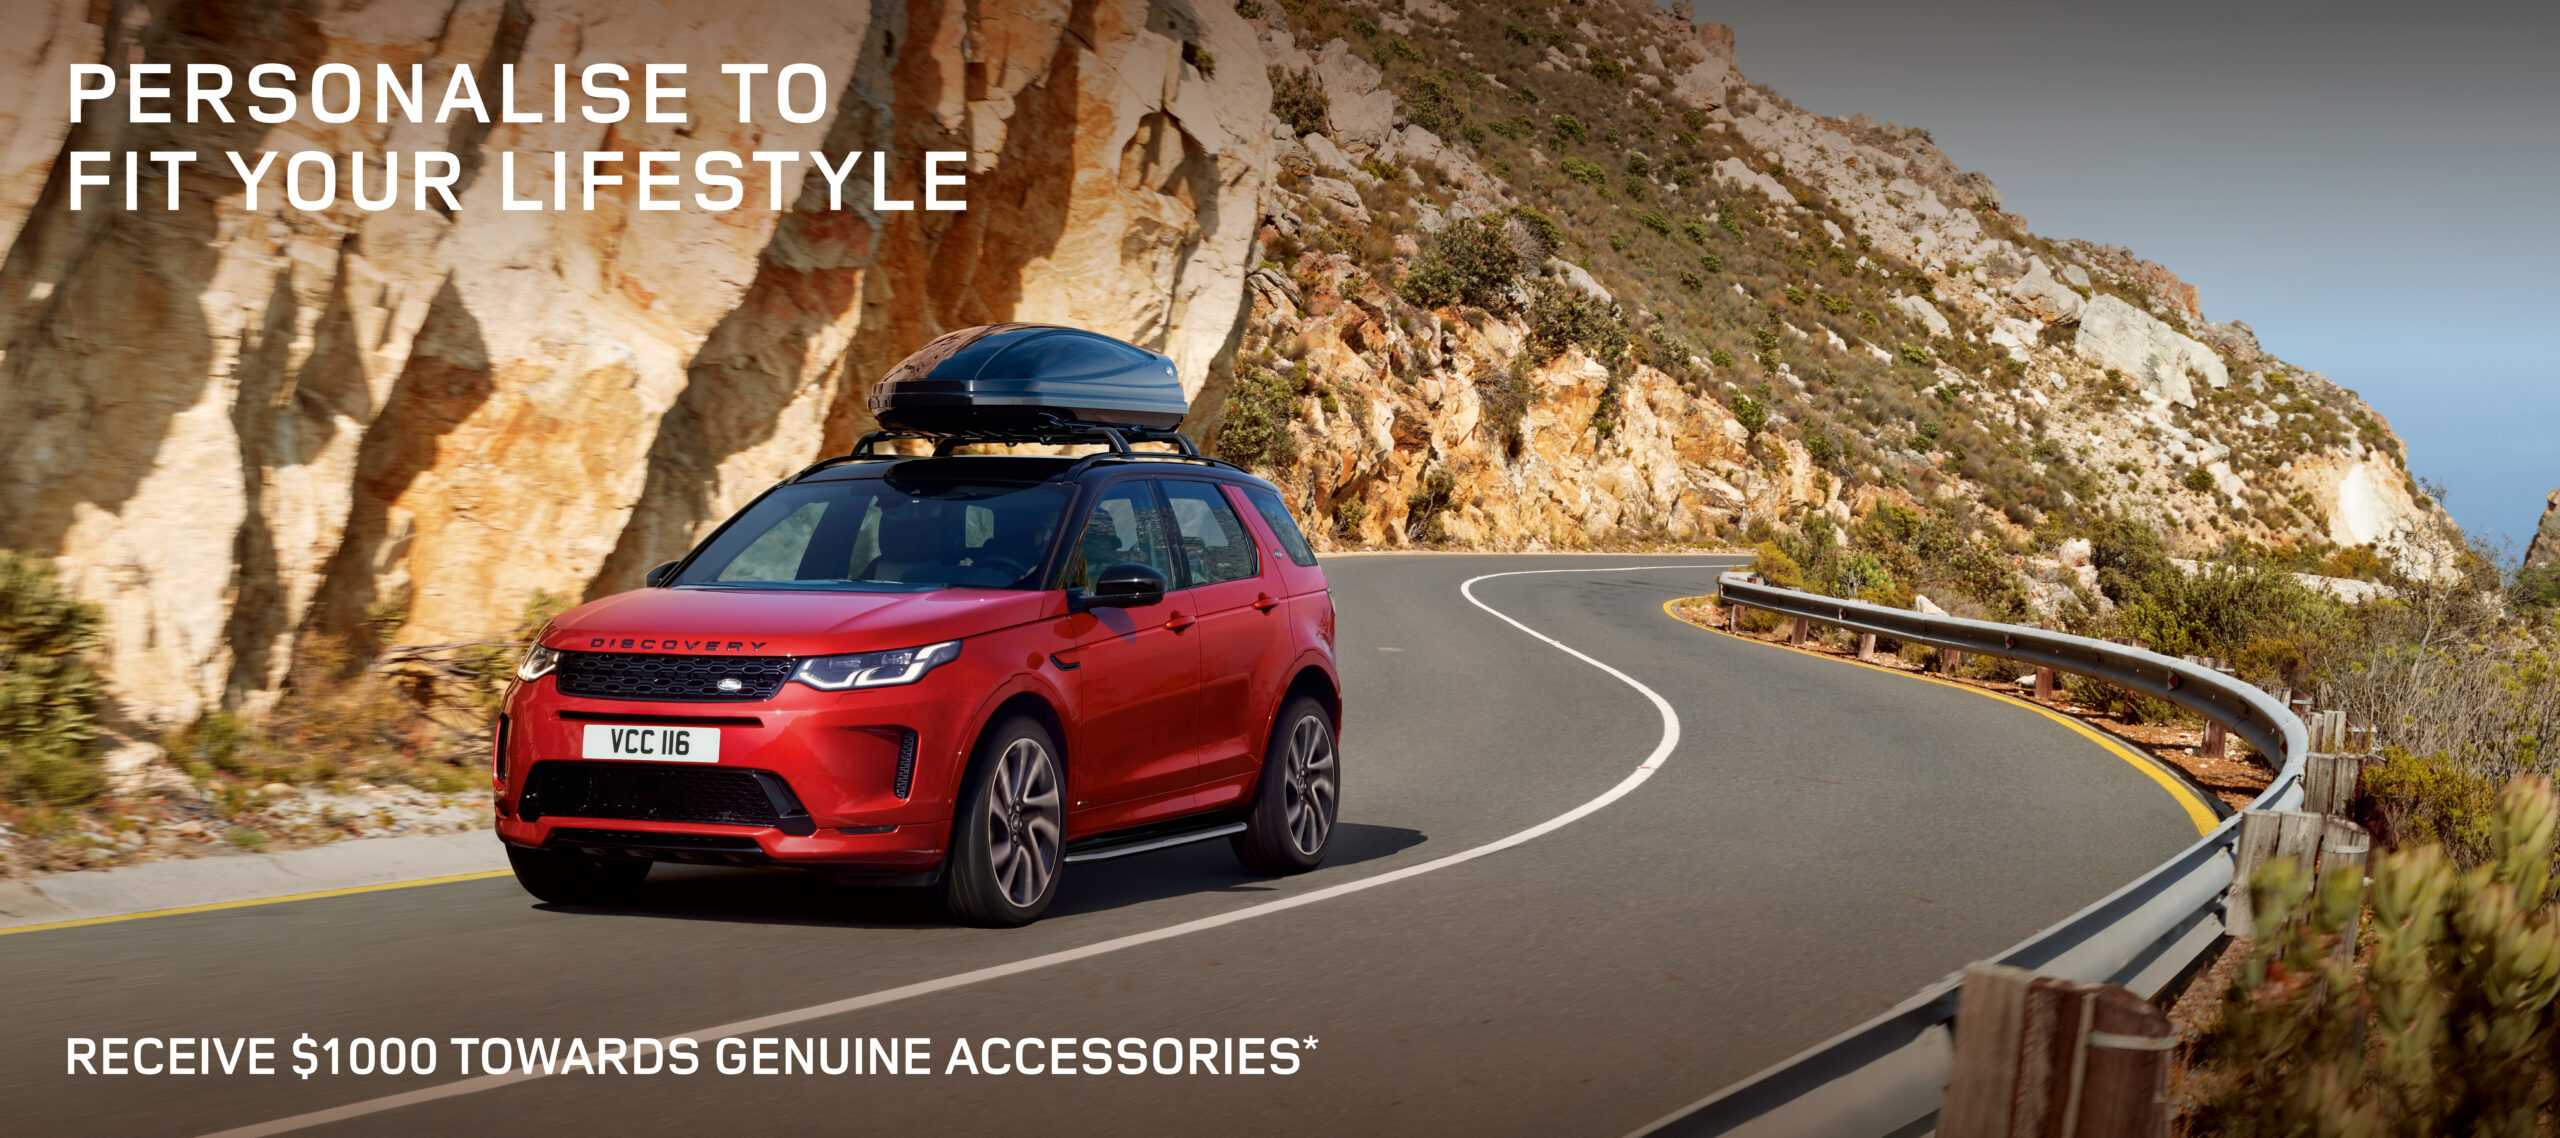 Land Rover $1000 Accessories Offer